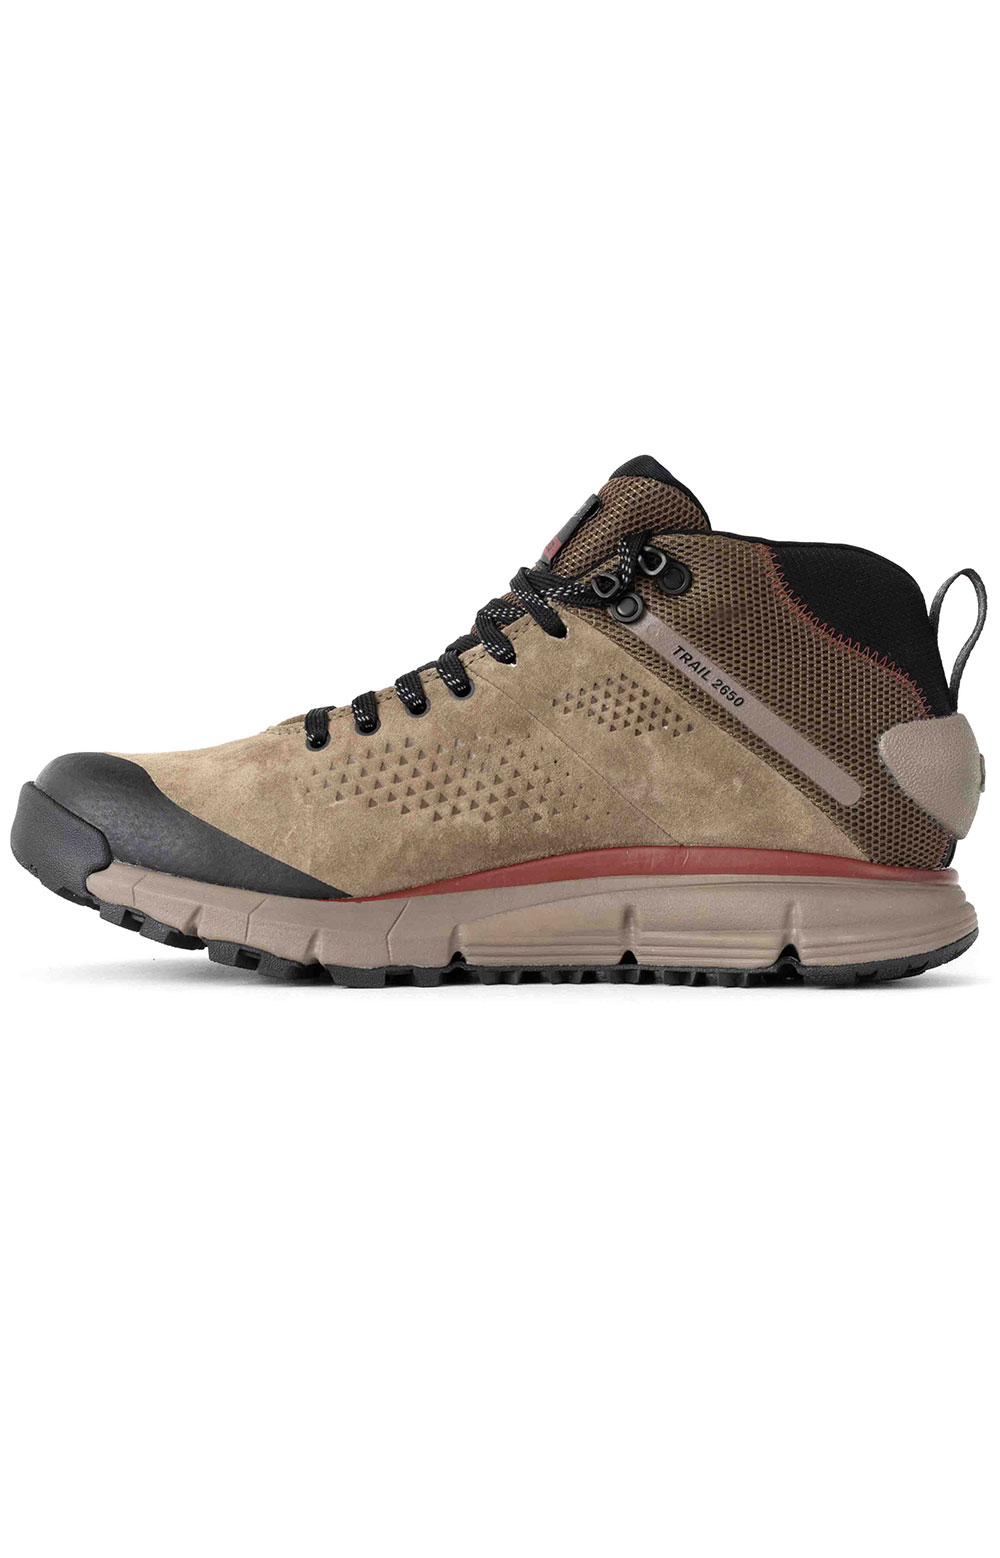 (61240) Trail 2650 GTX Mid Boots - Dusty Olive  4